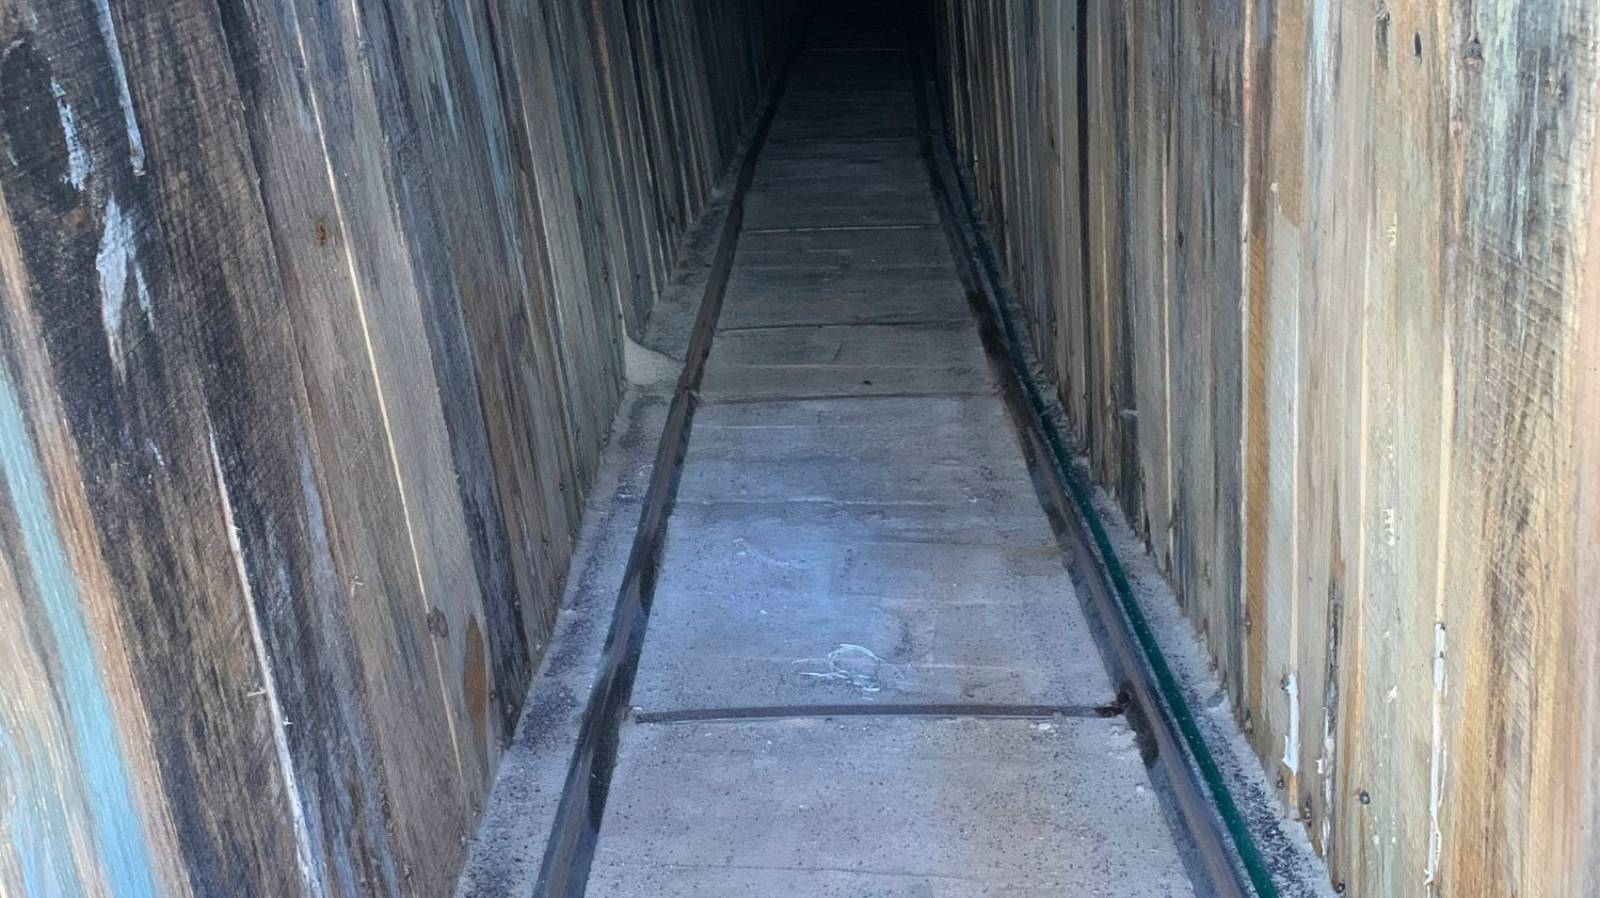 US border tunnel appears to be 'most sophisticated'